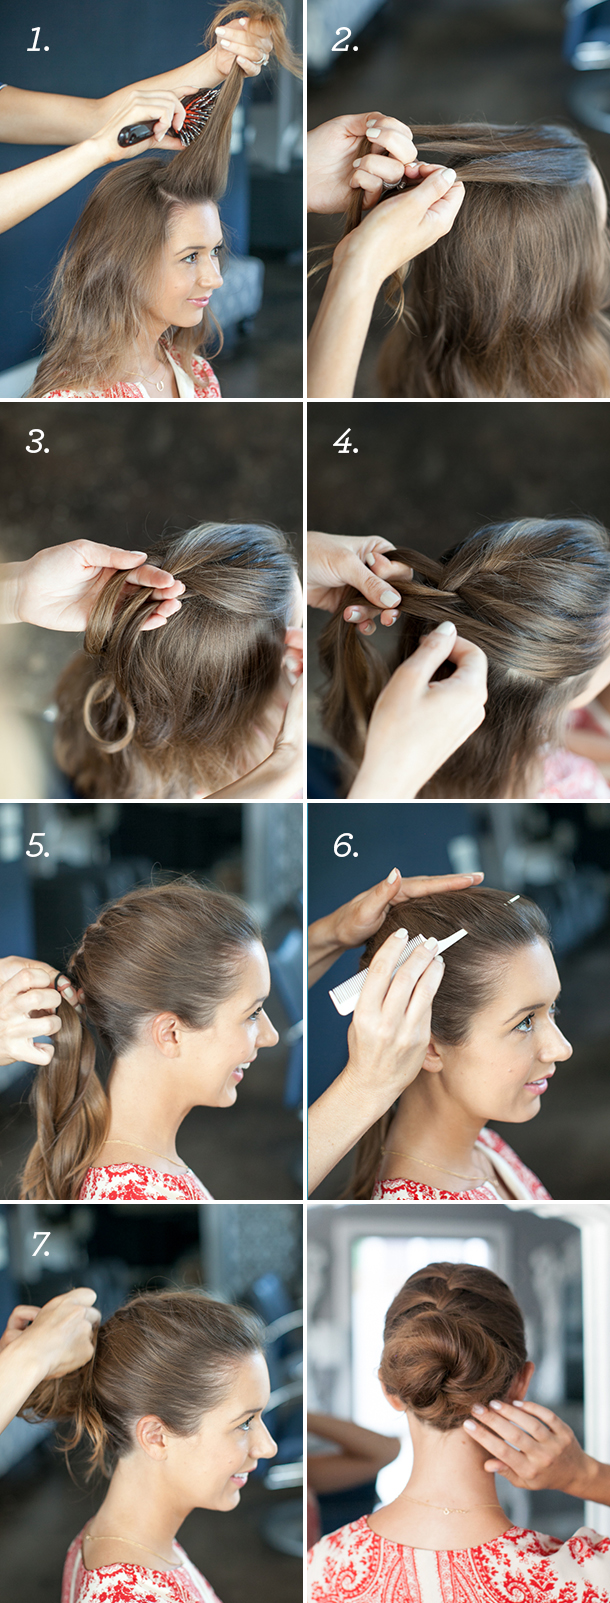 Pretty simple french braid bun camille styles french braid bun tutorial camille styles newpostlabelinstructions solutioingenieria Gallery